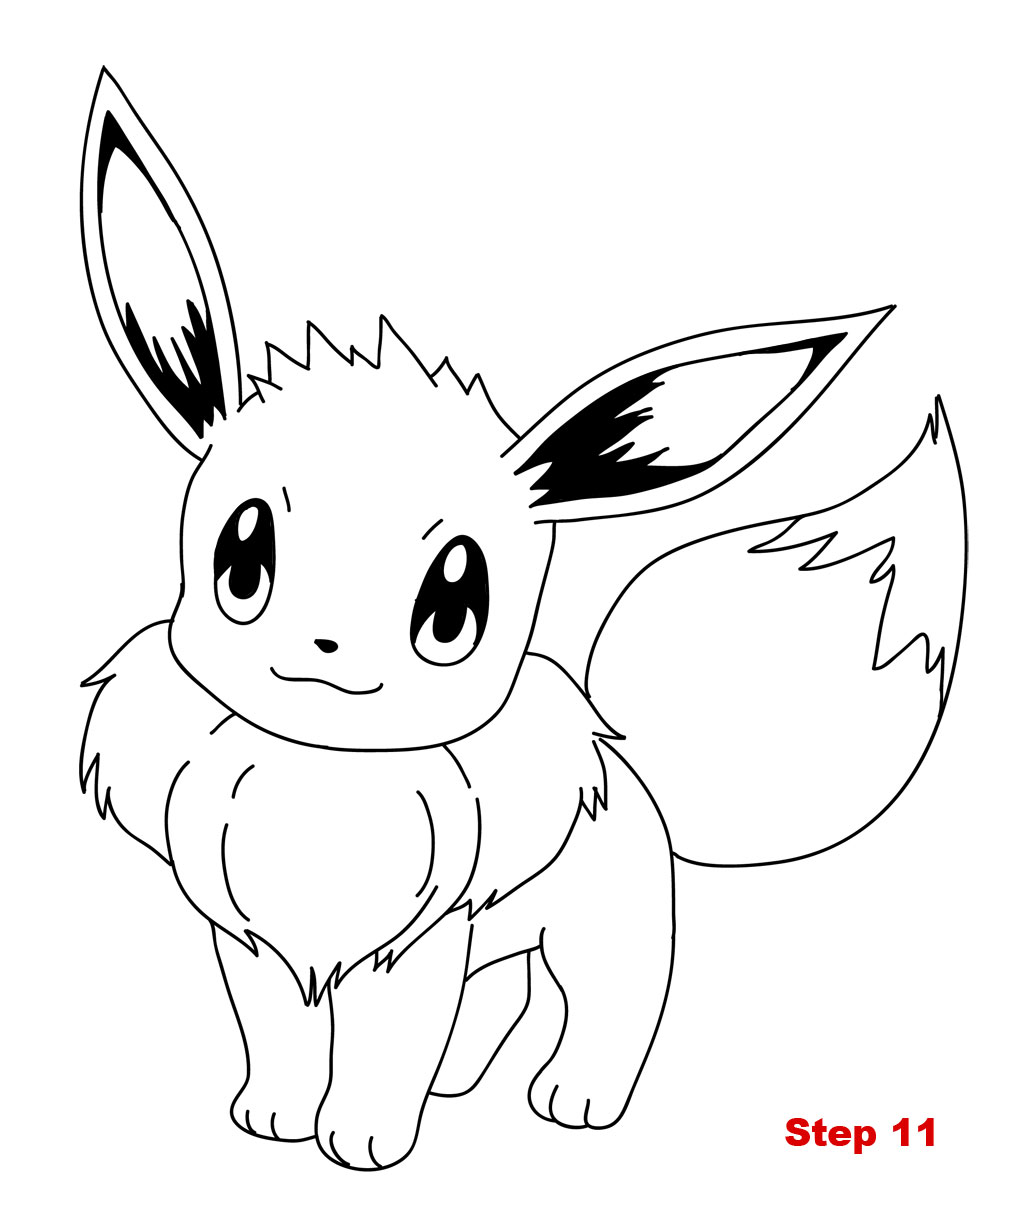 eevee coloring sheets eevee coloring pages to download and print for free eevee coloring sheets